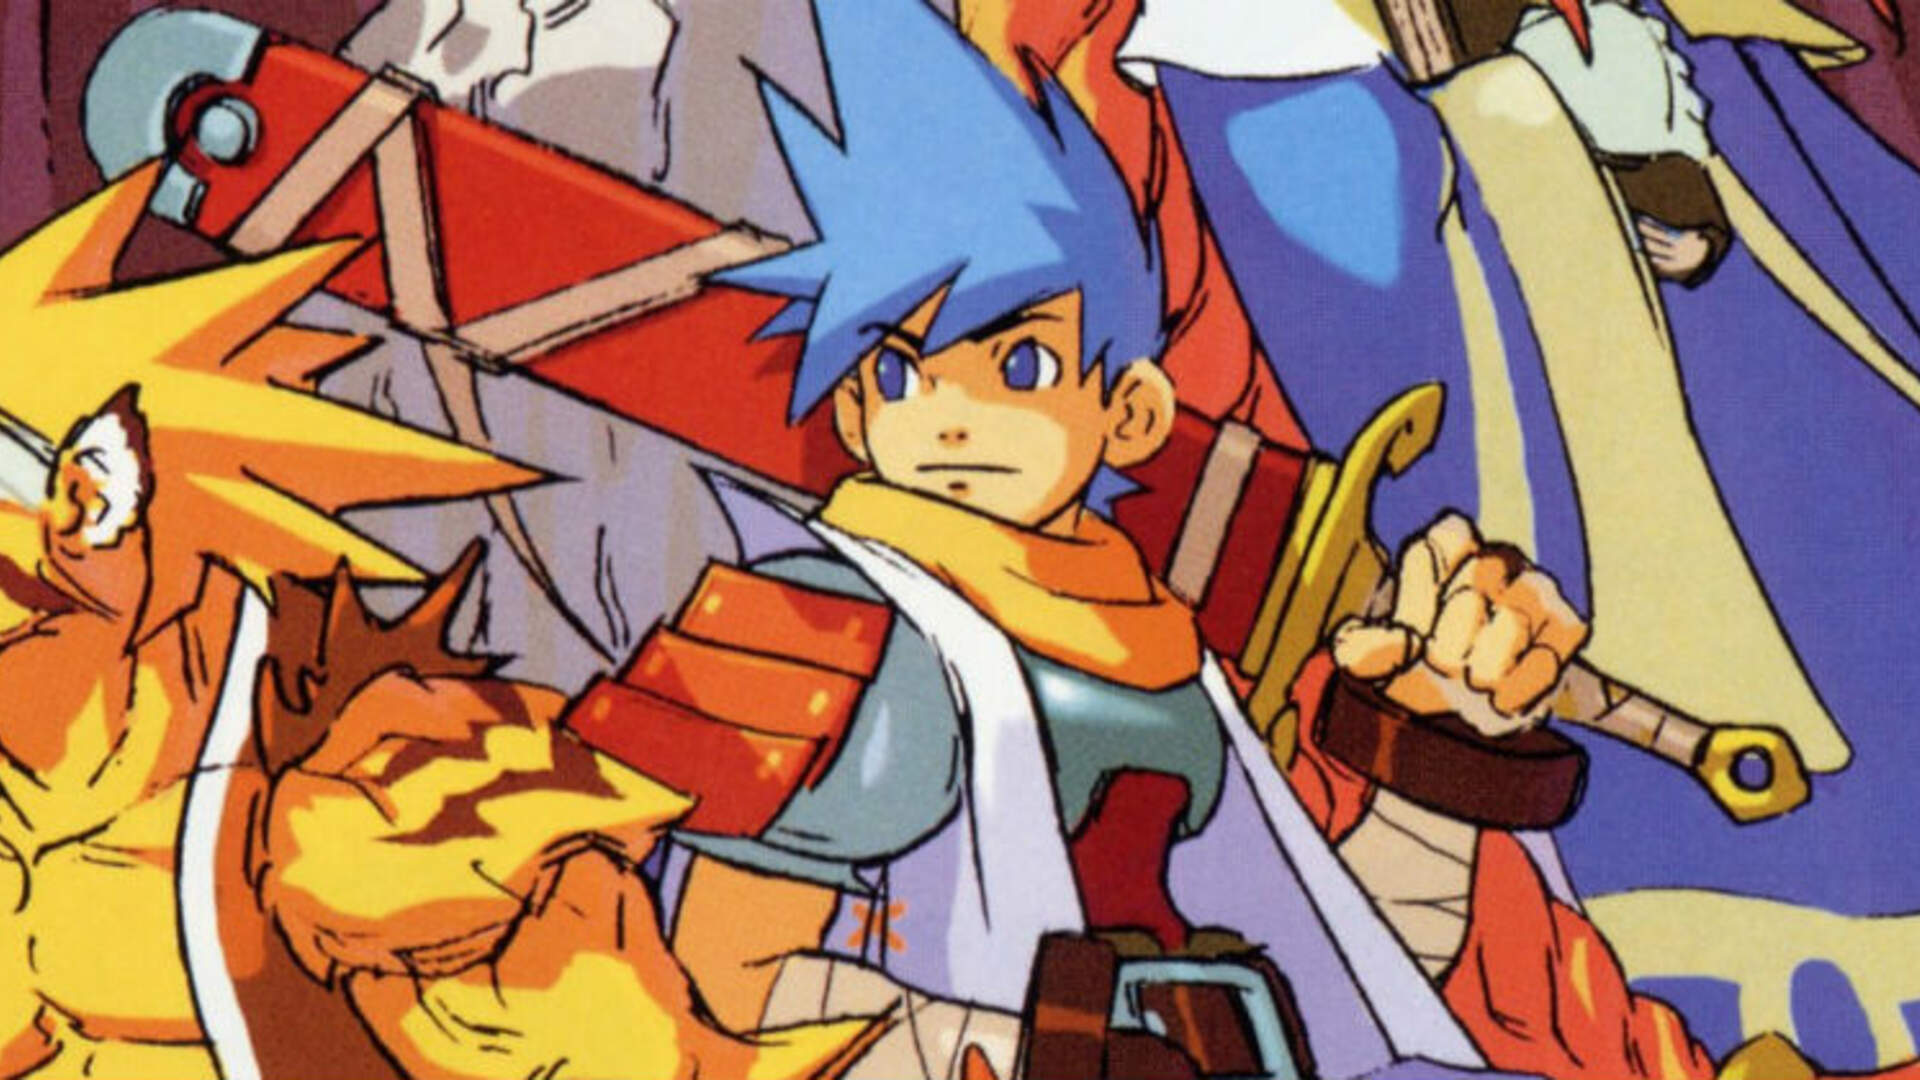 Breath of Fire III is Now on the PlayStation Store, and it's a Must-Play for Fans of JRPGs